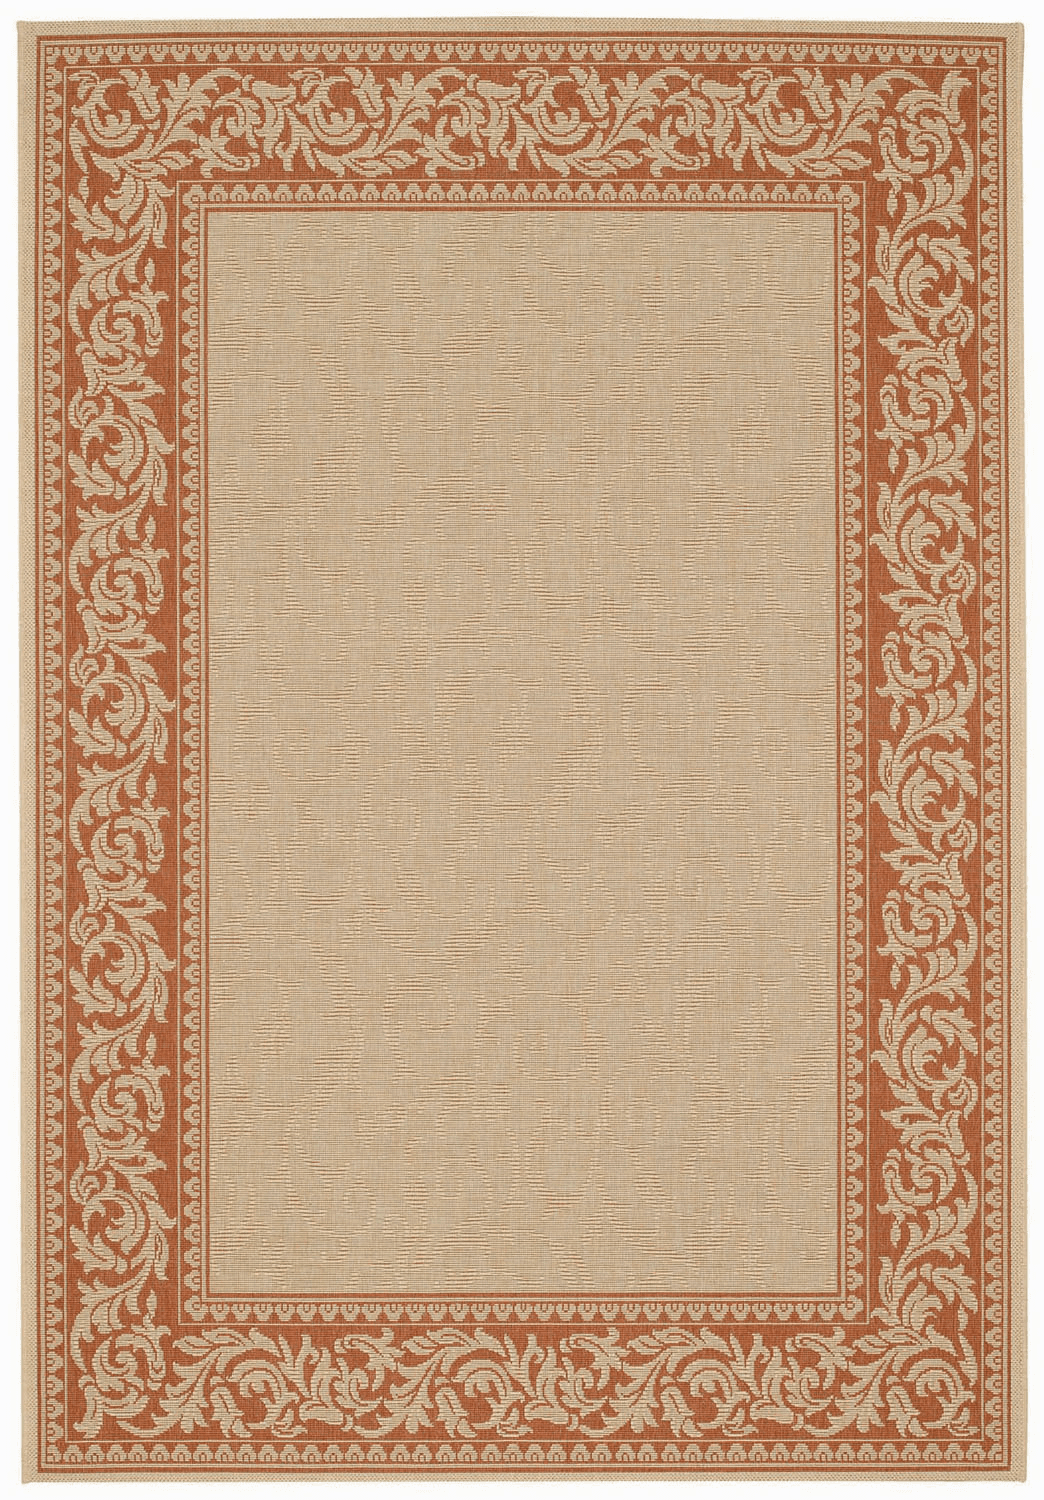 Machine Woven Potters Clay Rug